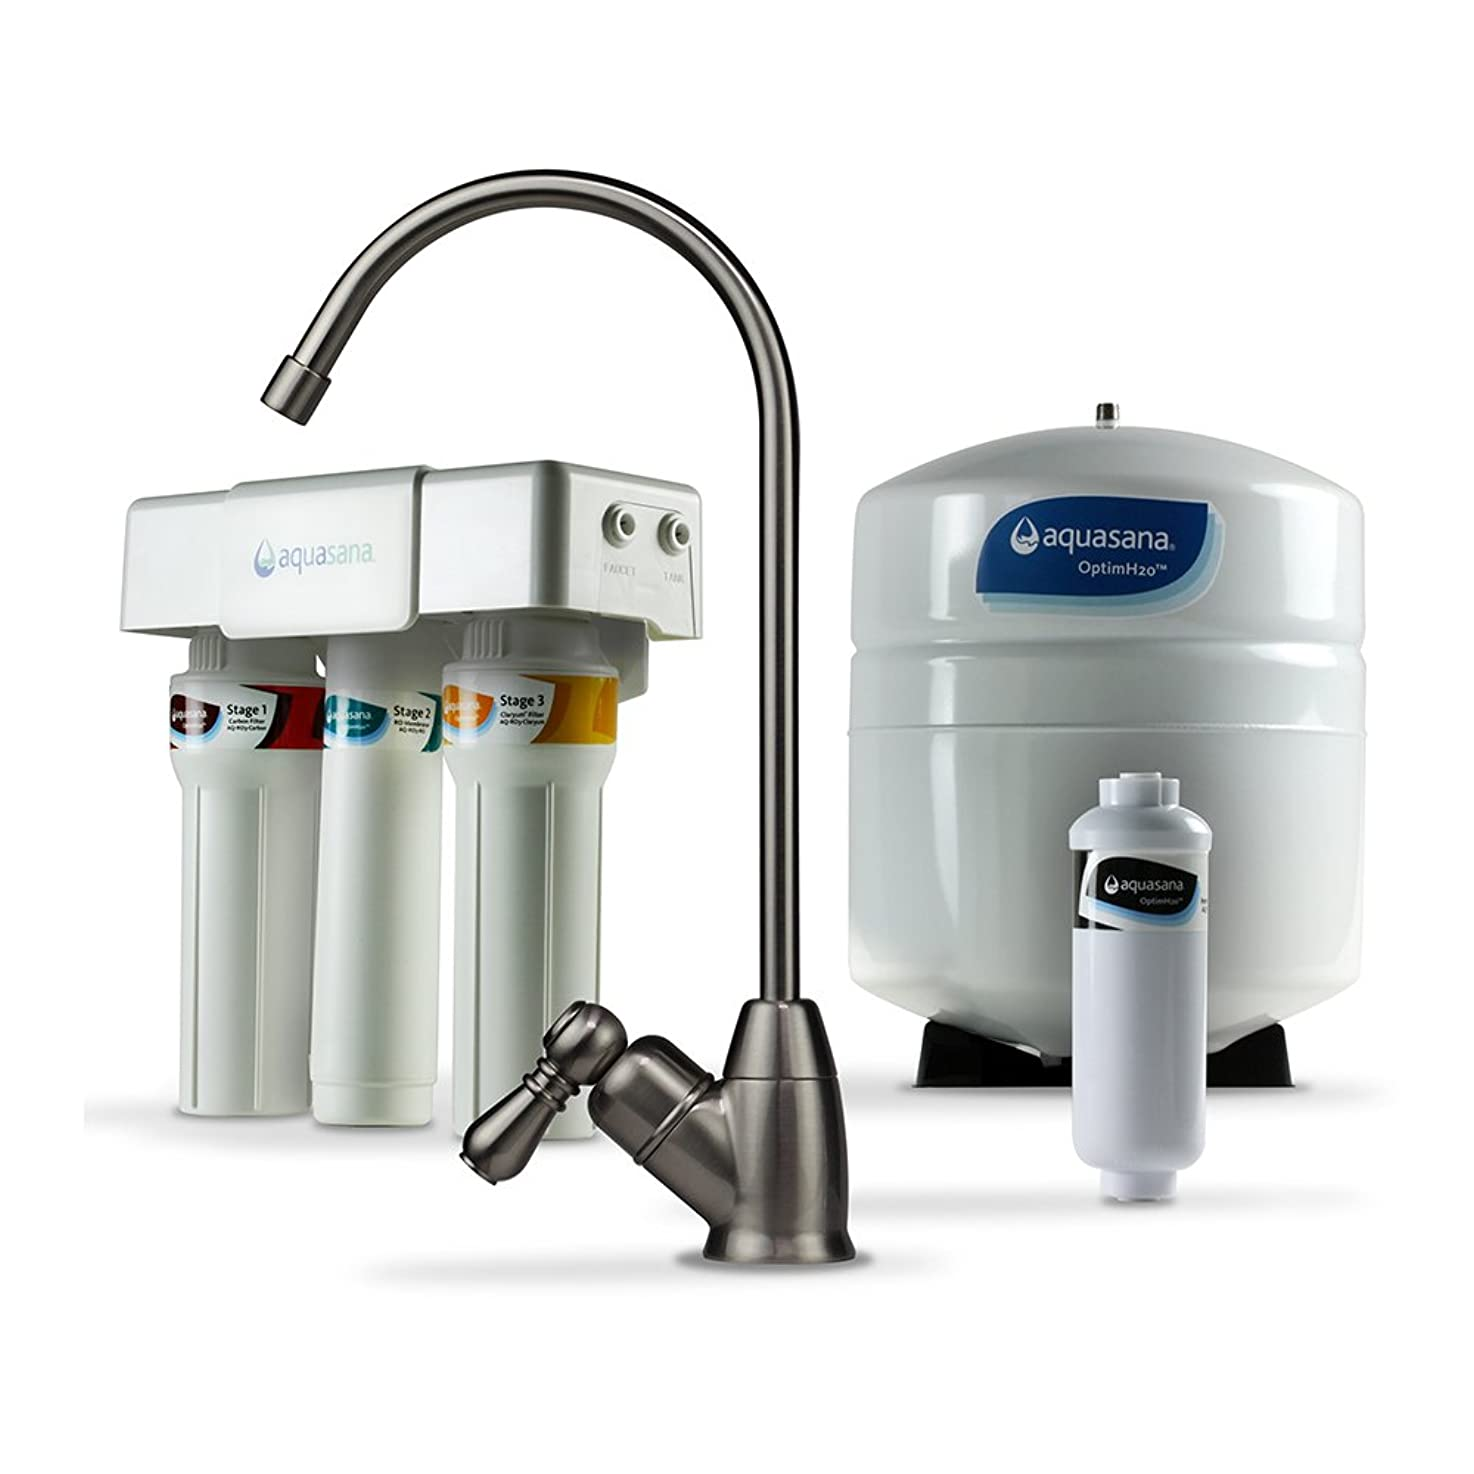 Aquasana OptimH2O Reverse Osmosis Water Filter with Remineralizer and Brushed Nickel Faucet